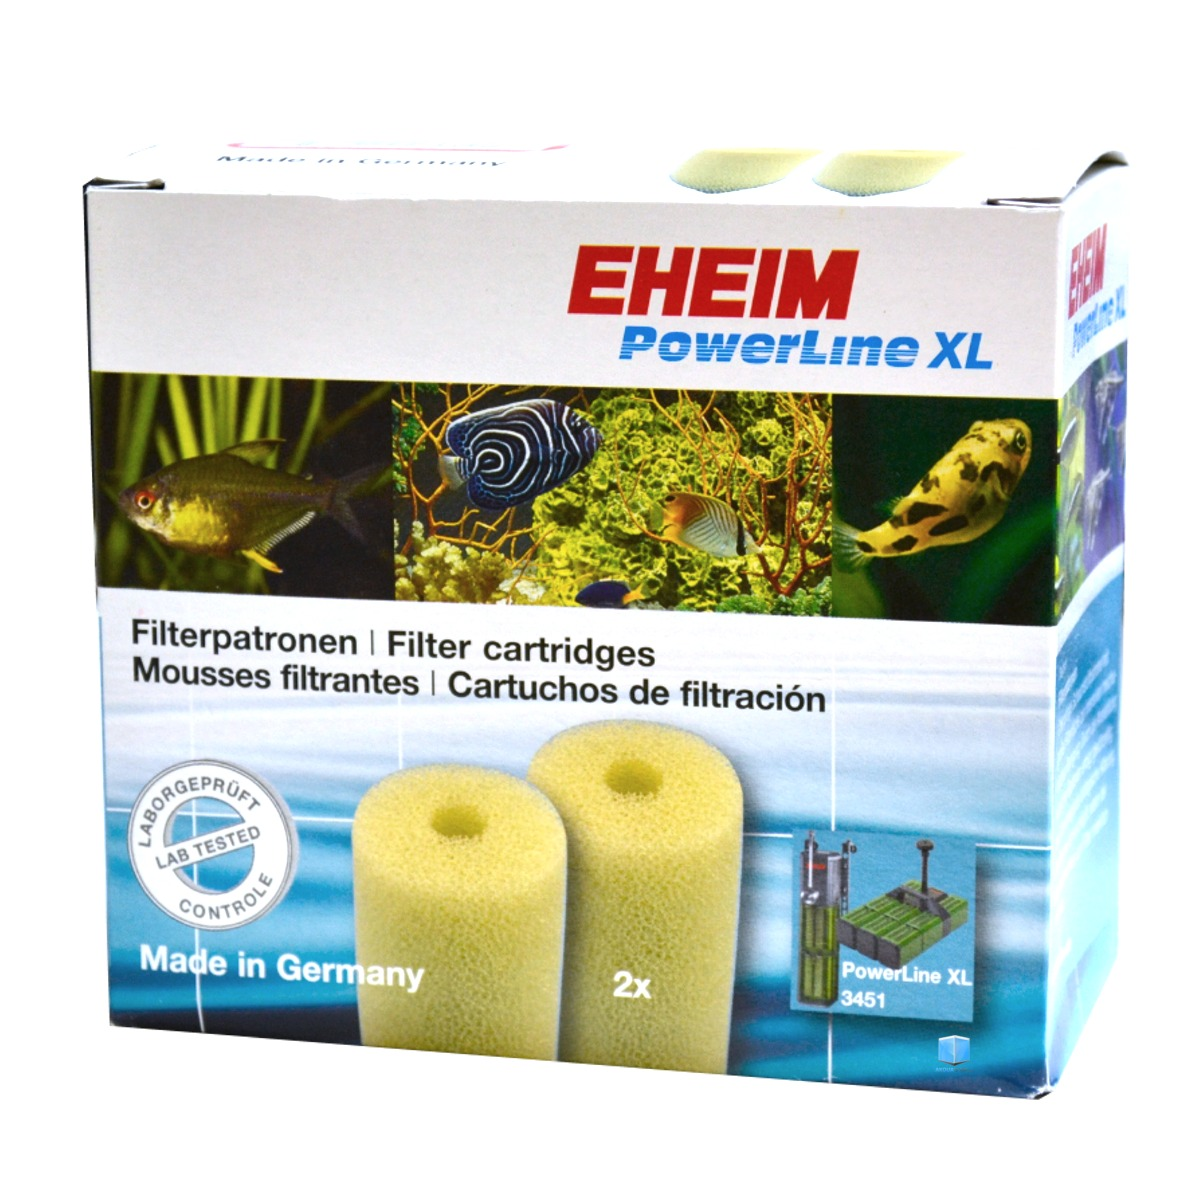 EHEIM Lot de 2 mousses filtrantes pour filtre Eheim Powerline 2252 et 3451